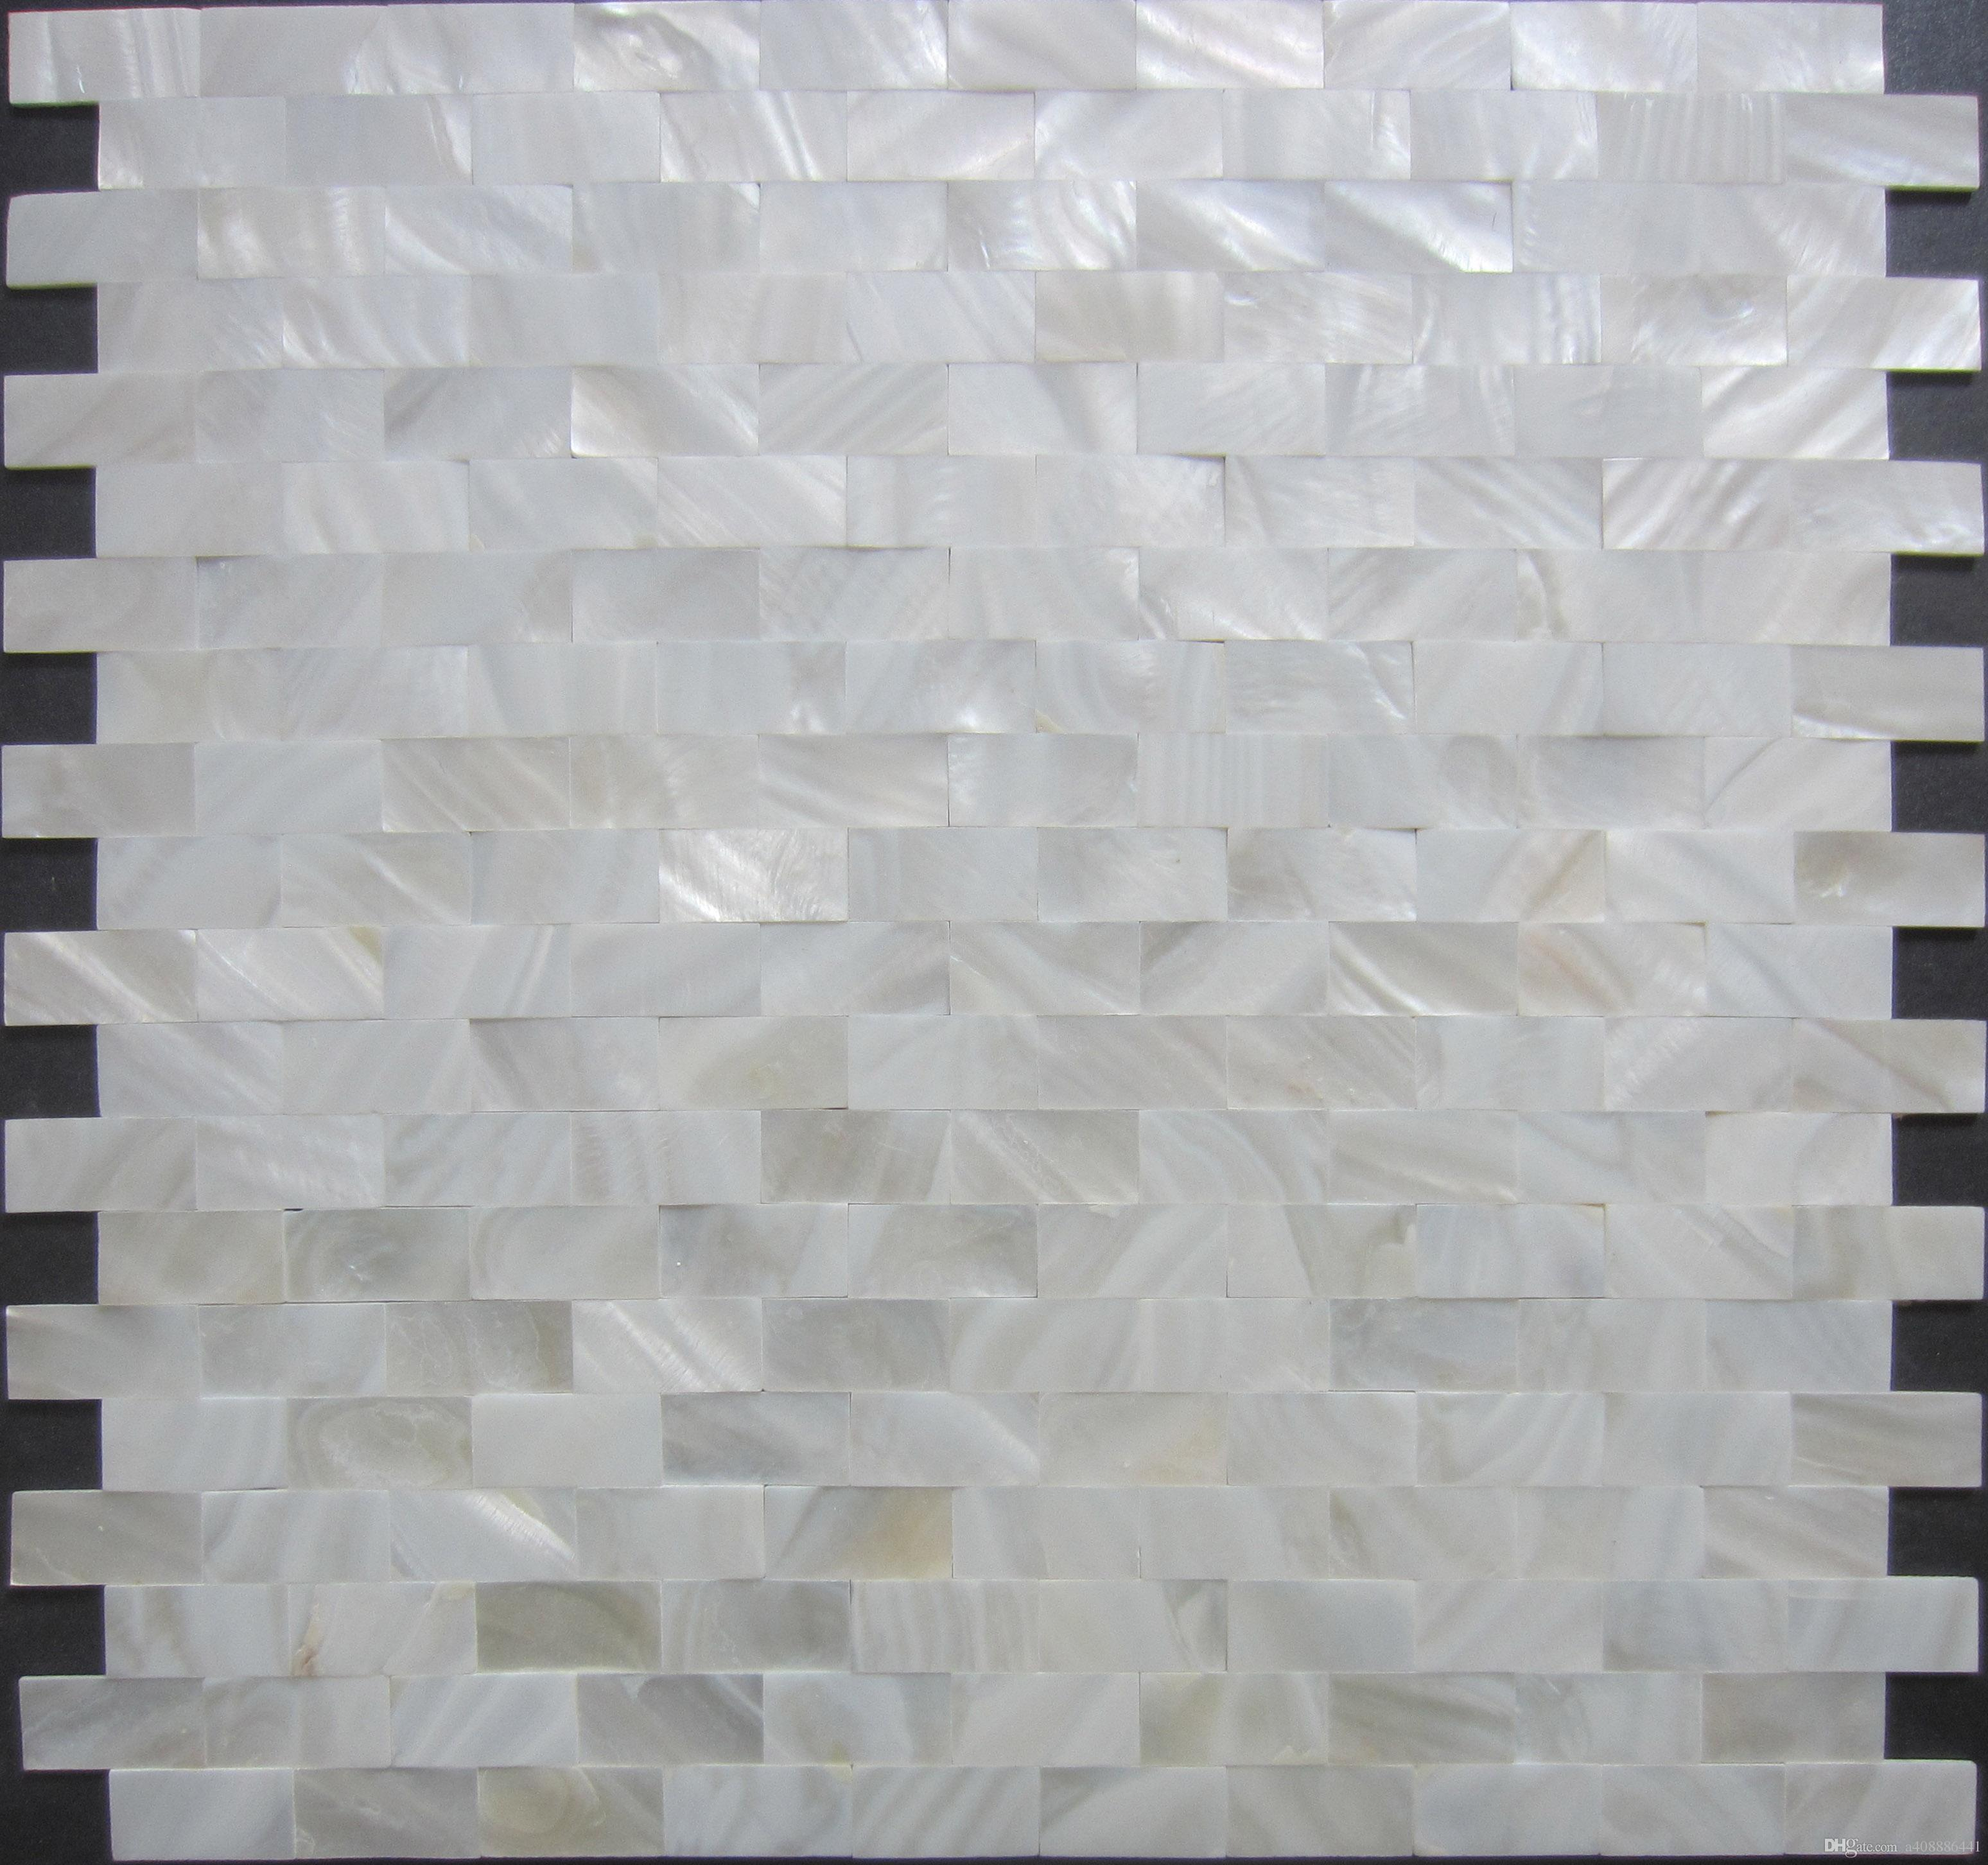 Home Mosaics Tiles White Subway Brick Mother Of Pearl Tile Kitchen